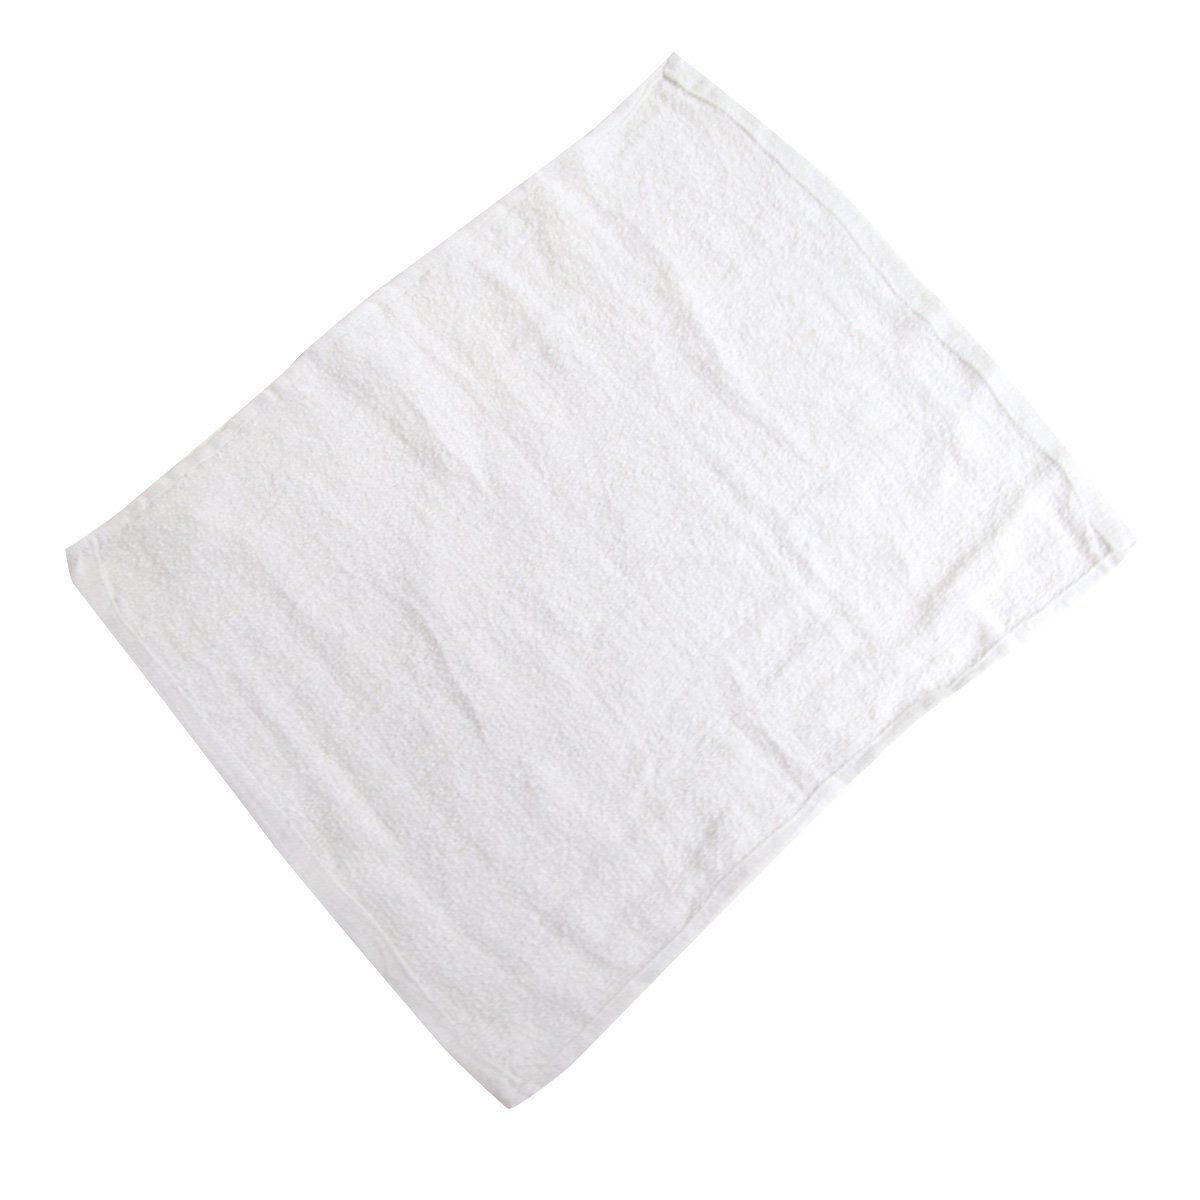 Trimaco SuperTuff Roll White Terry Towels 14 inch x 17 inch 24 count